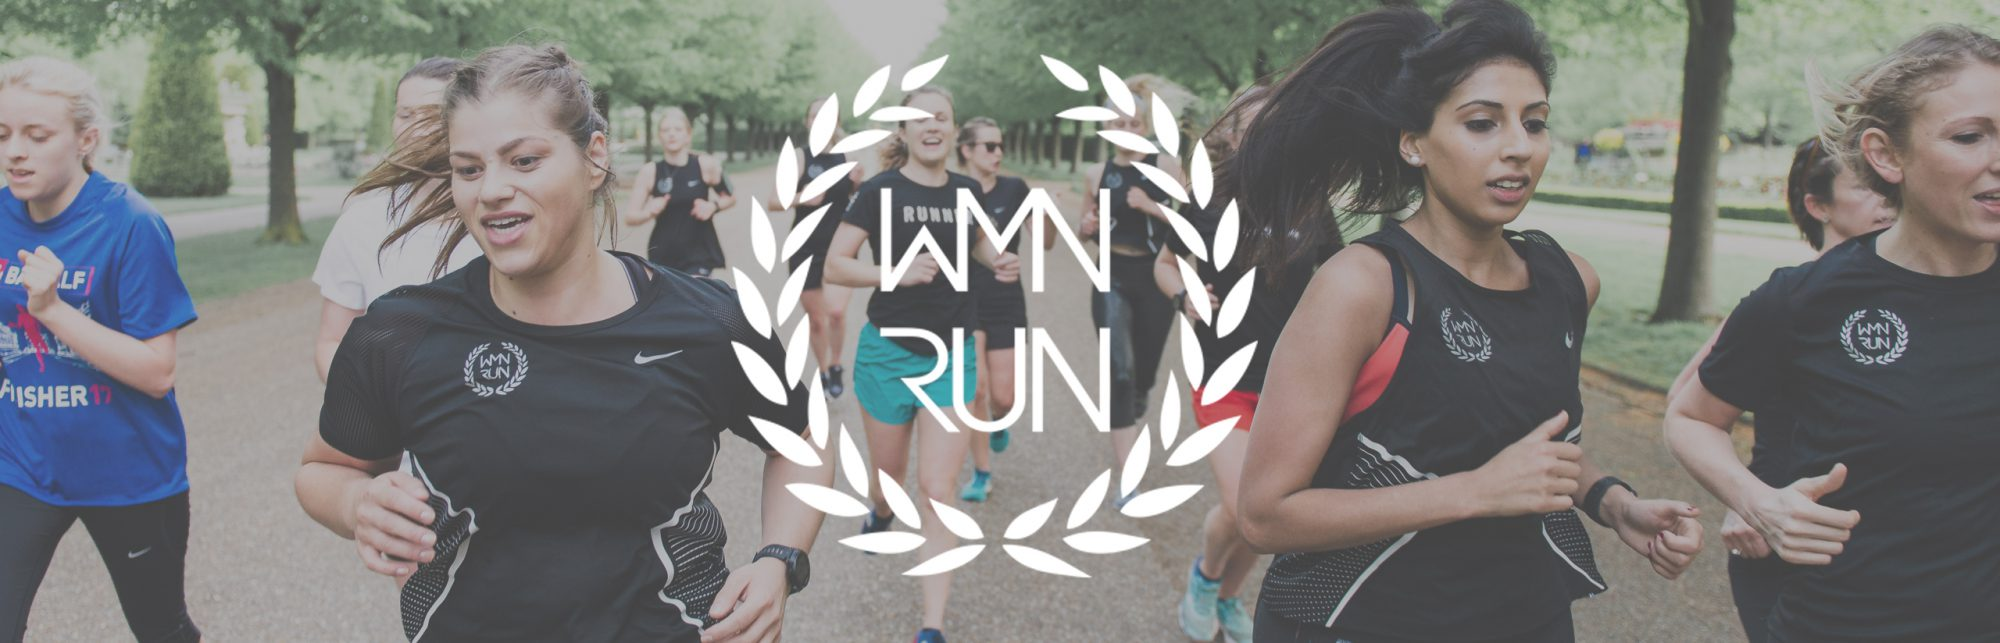 WMN RUN – Championing female endurance